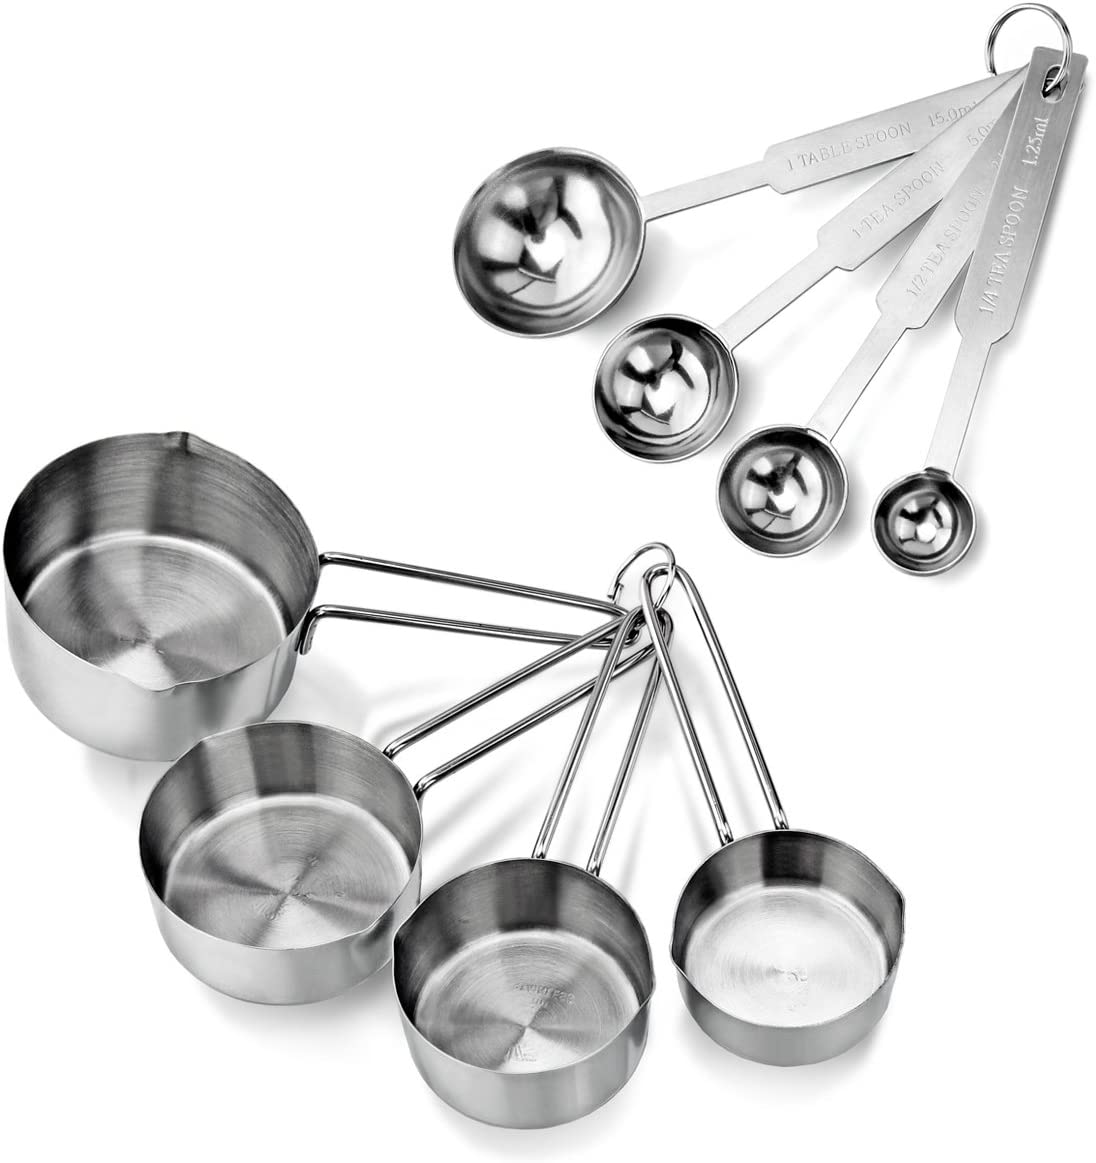 New Star Stainless Steel Measuring Set